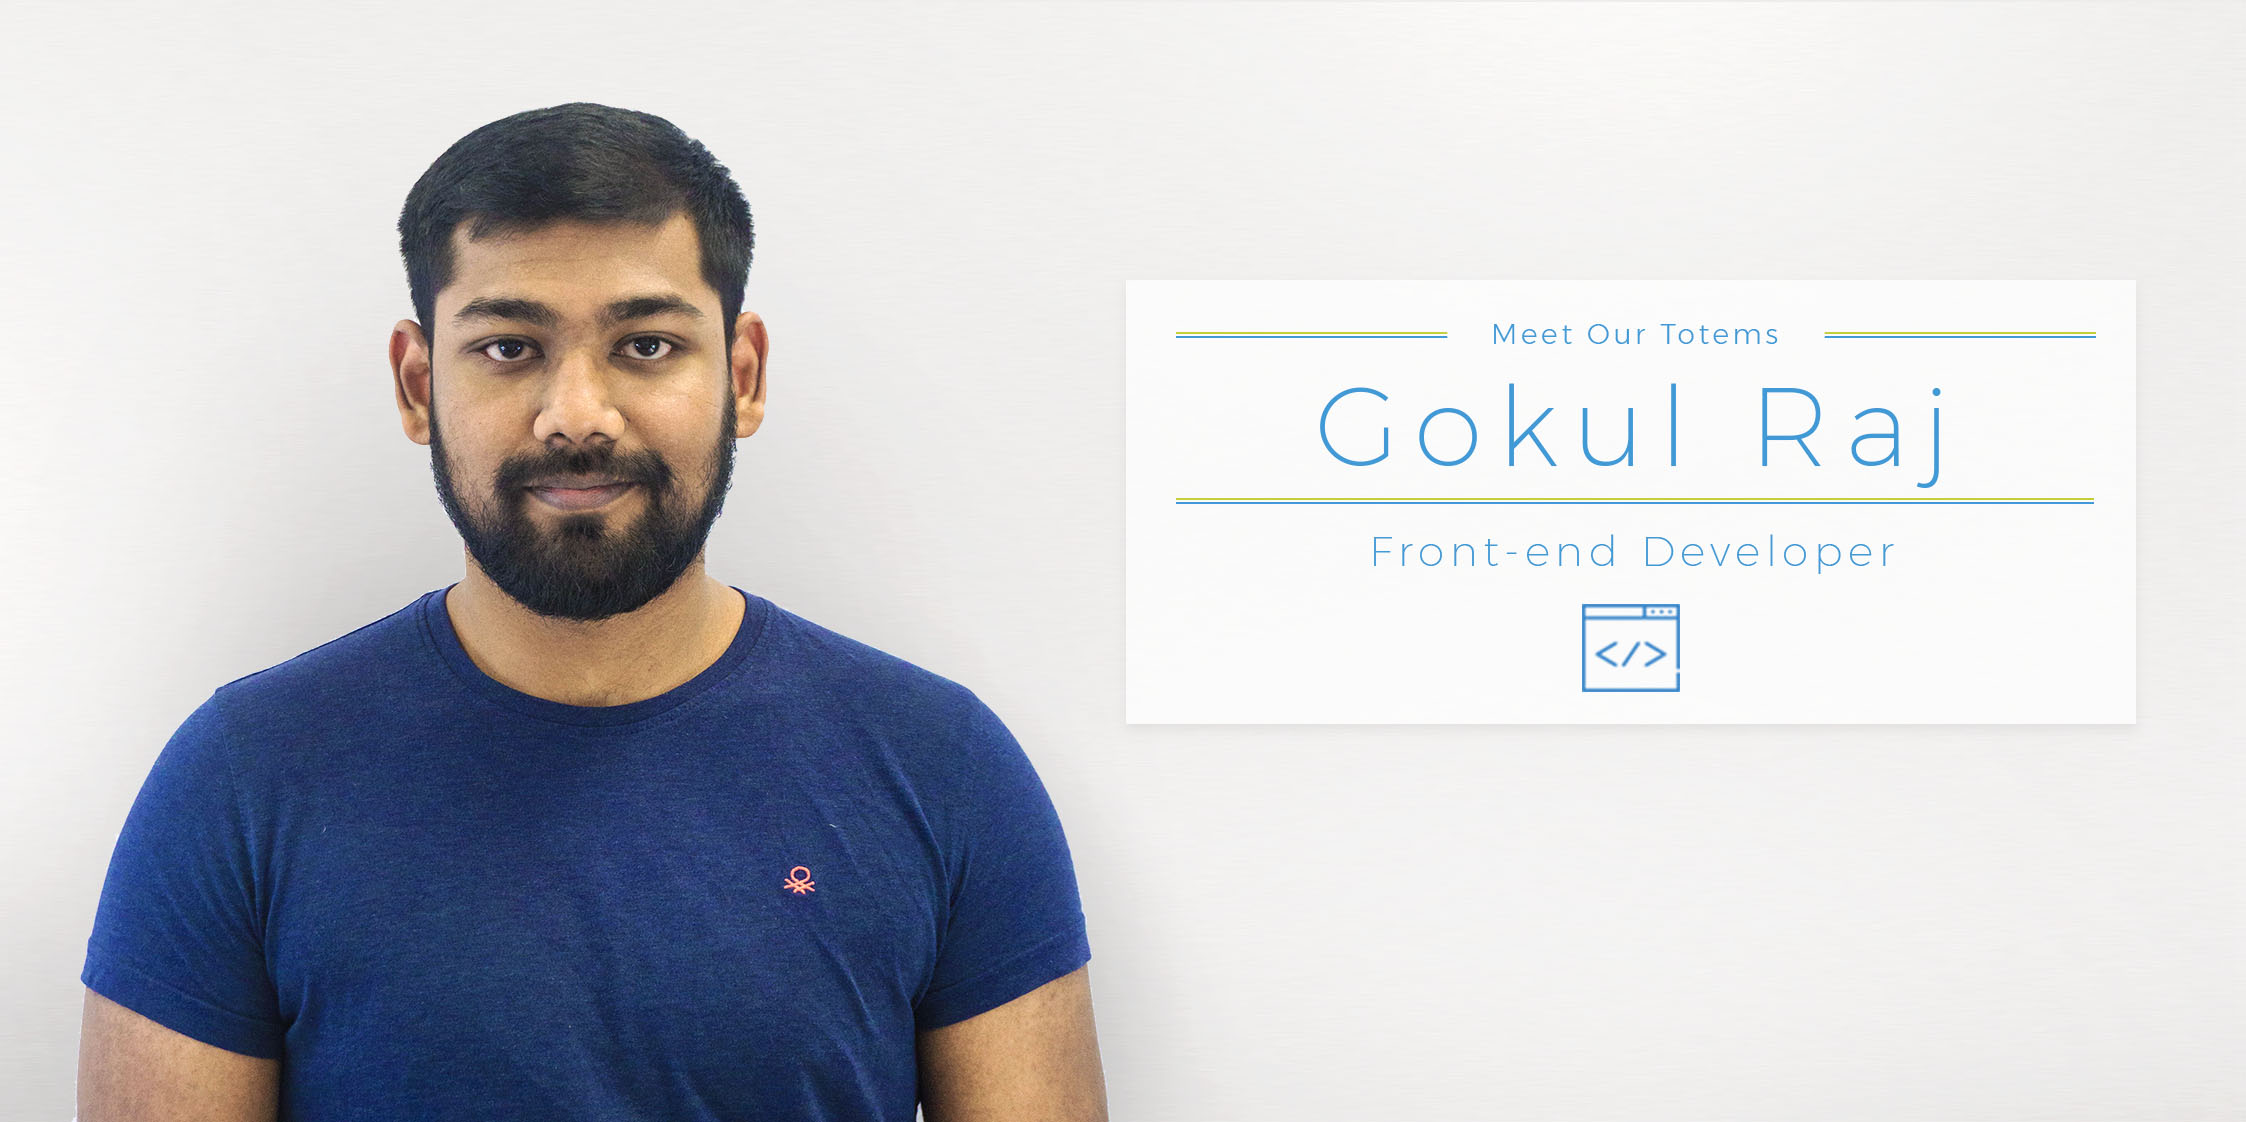 Meet Our Totems – Gokul